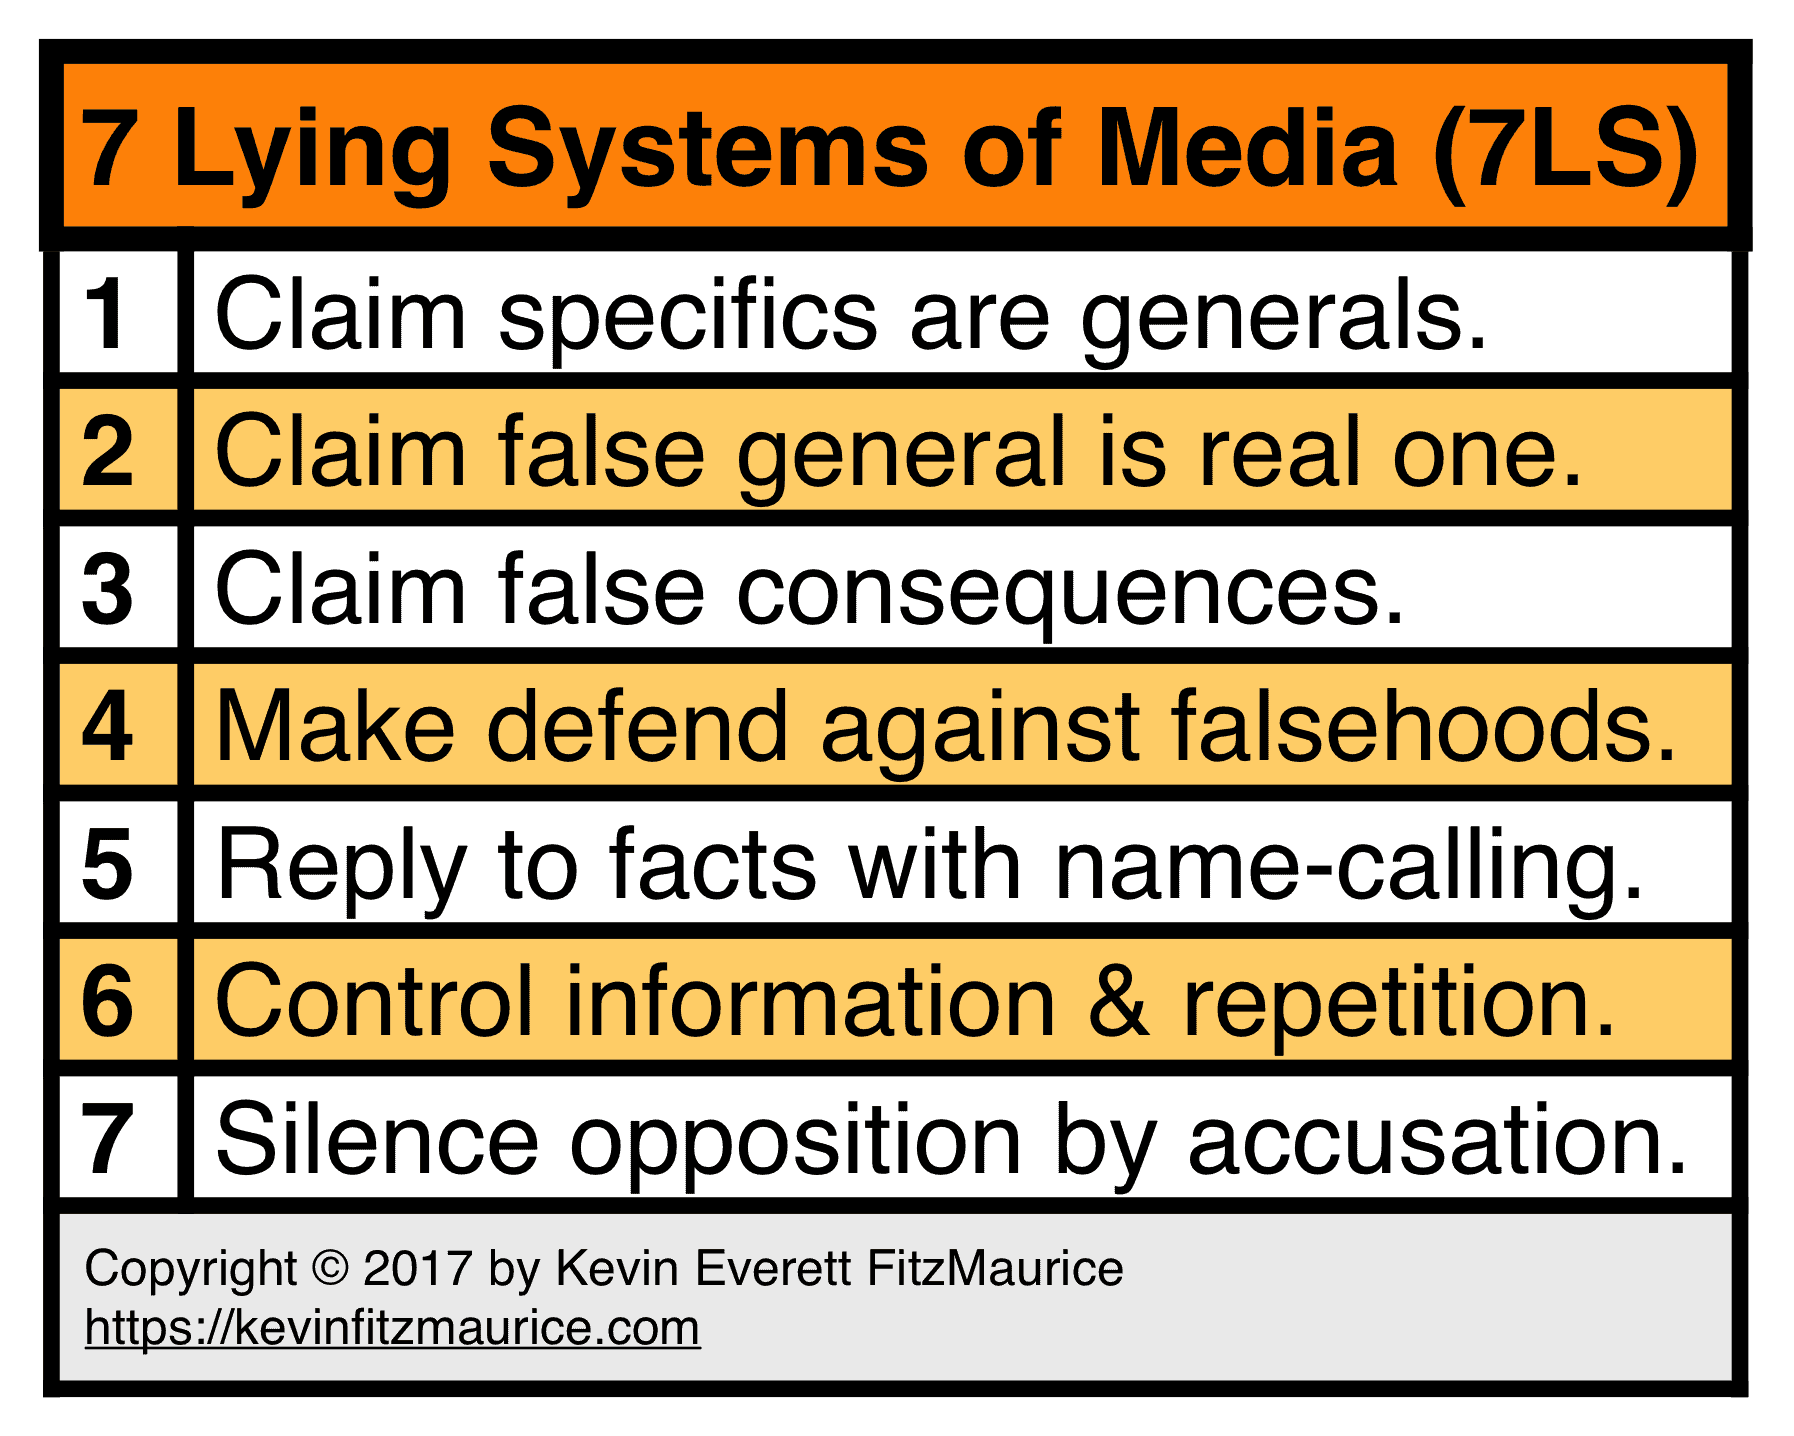 7 Lying Systems of Media